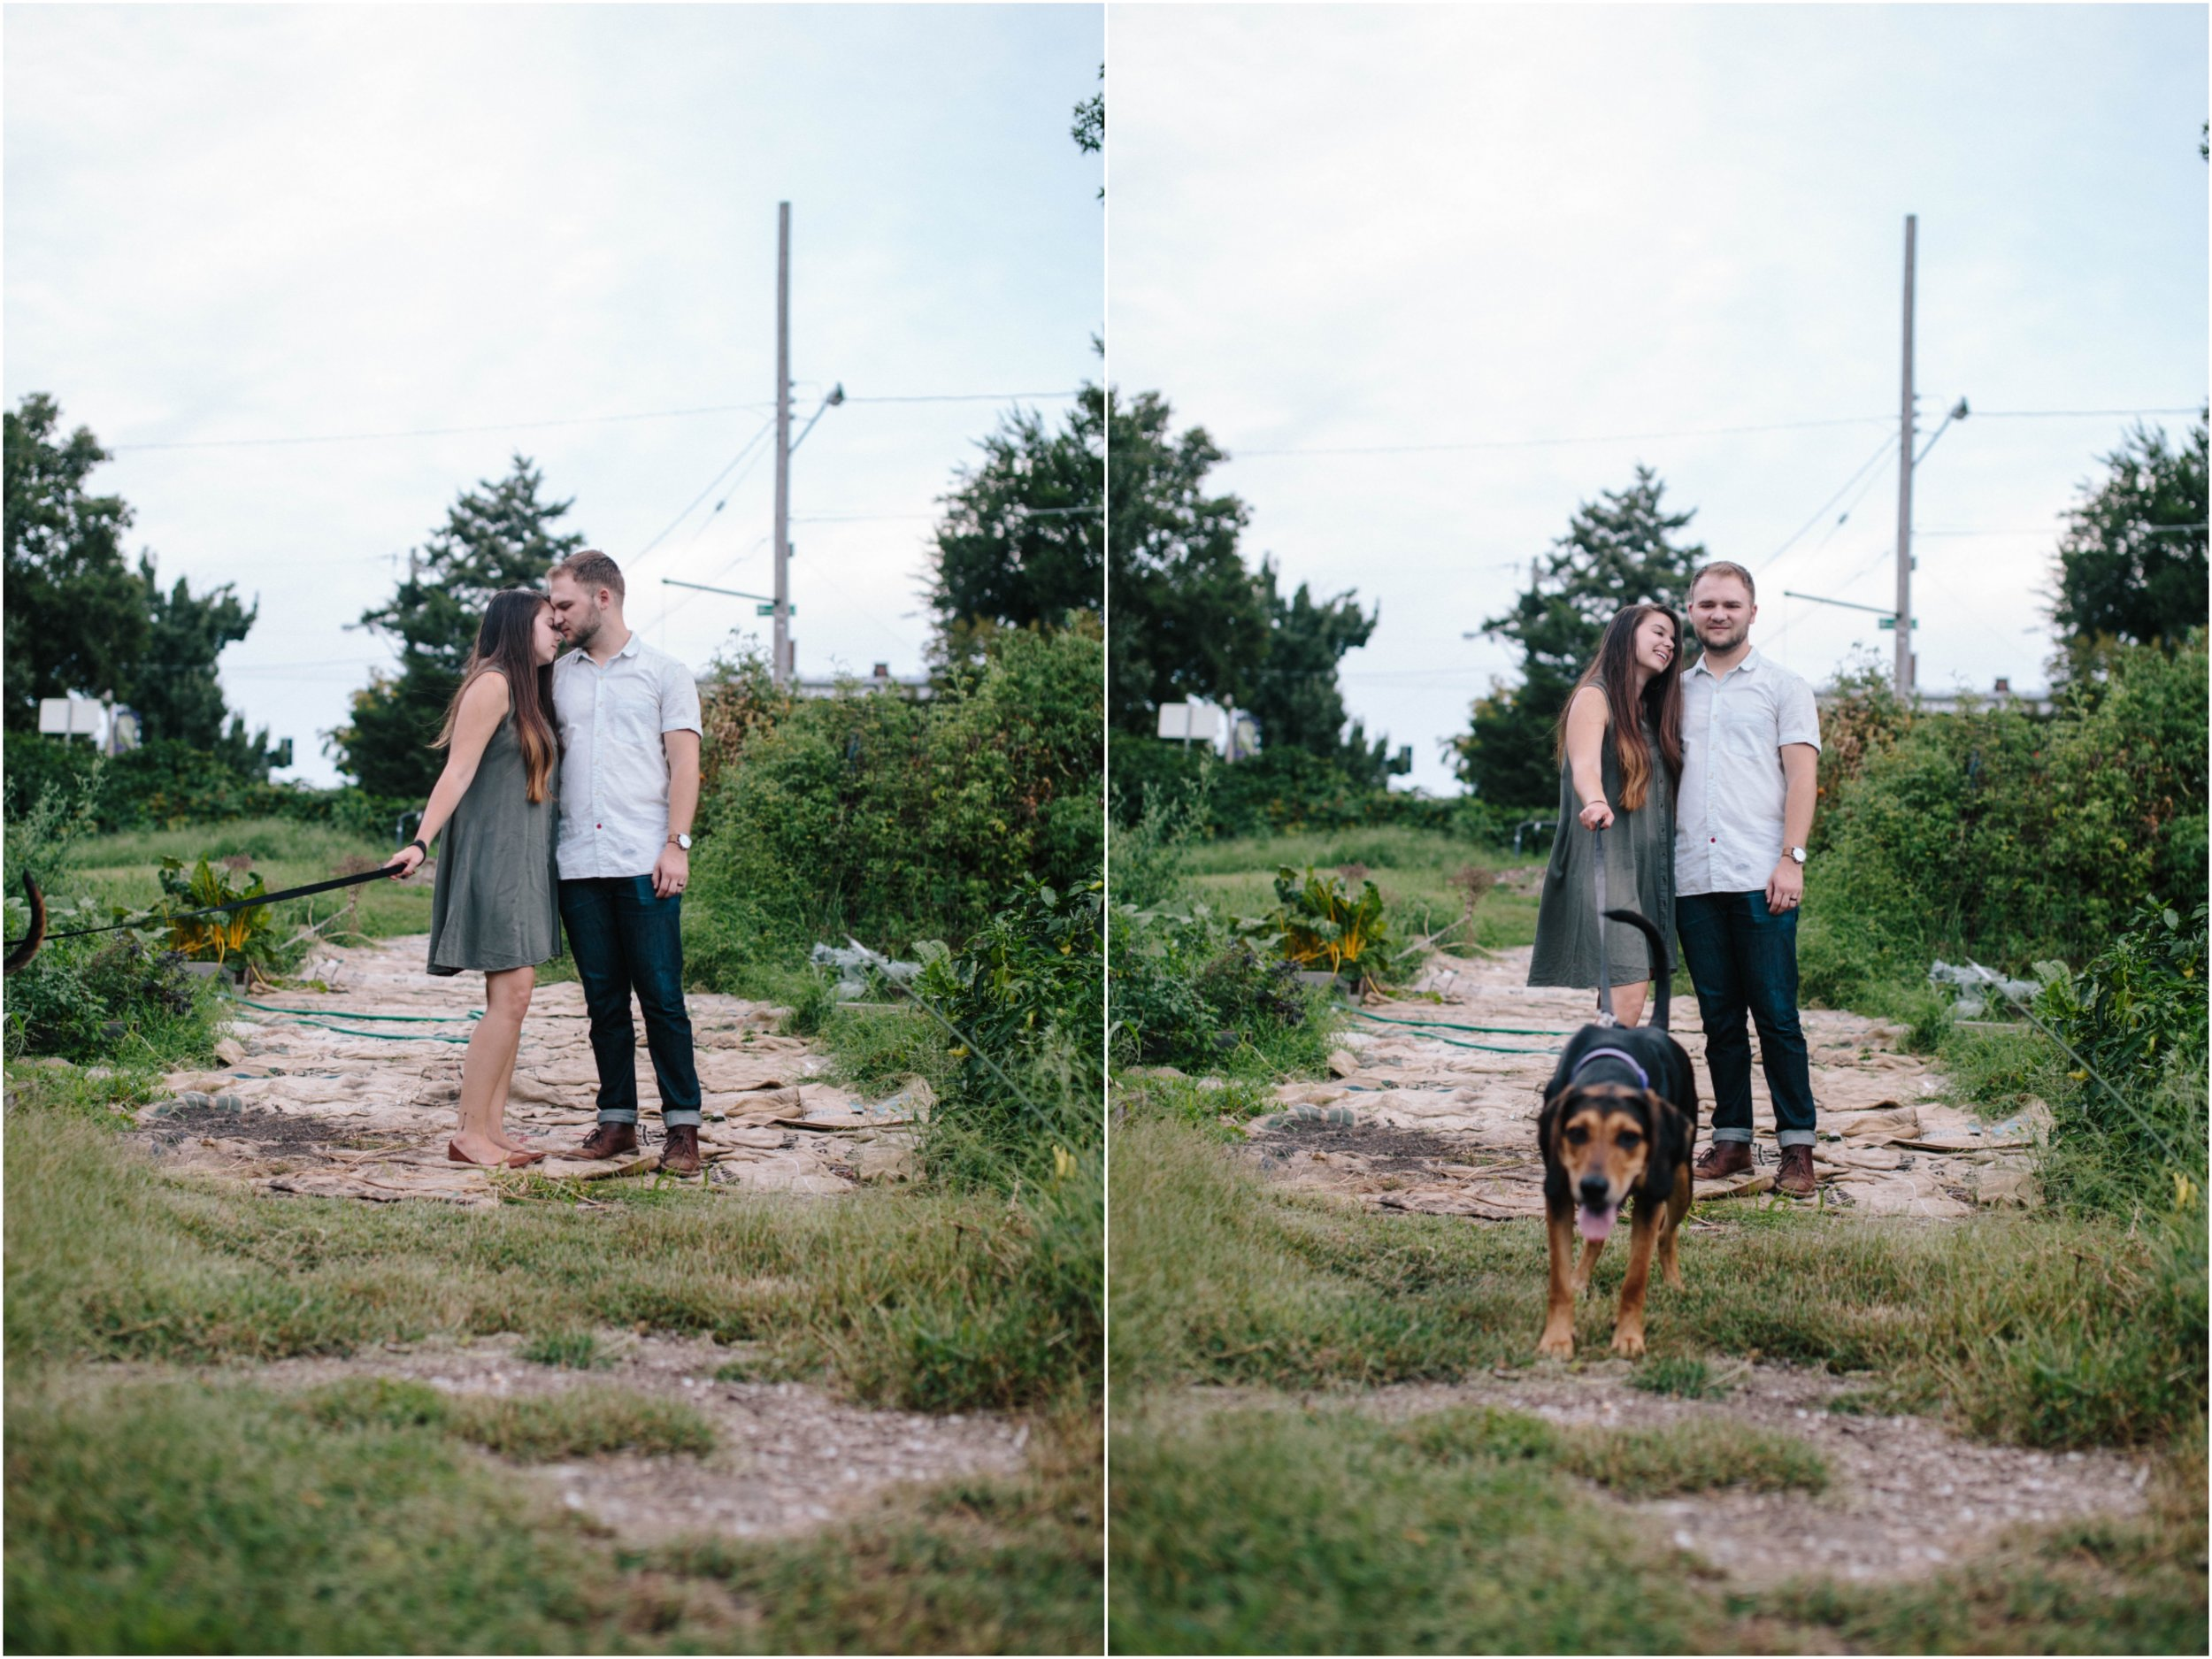 Tanner & Taylor: In home Lifestyle Session | Hannahill Photography | Kansas City, MO